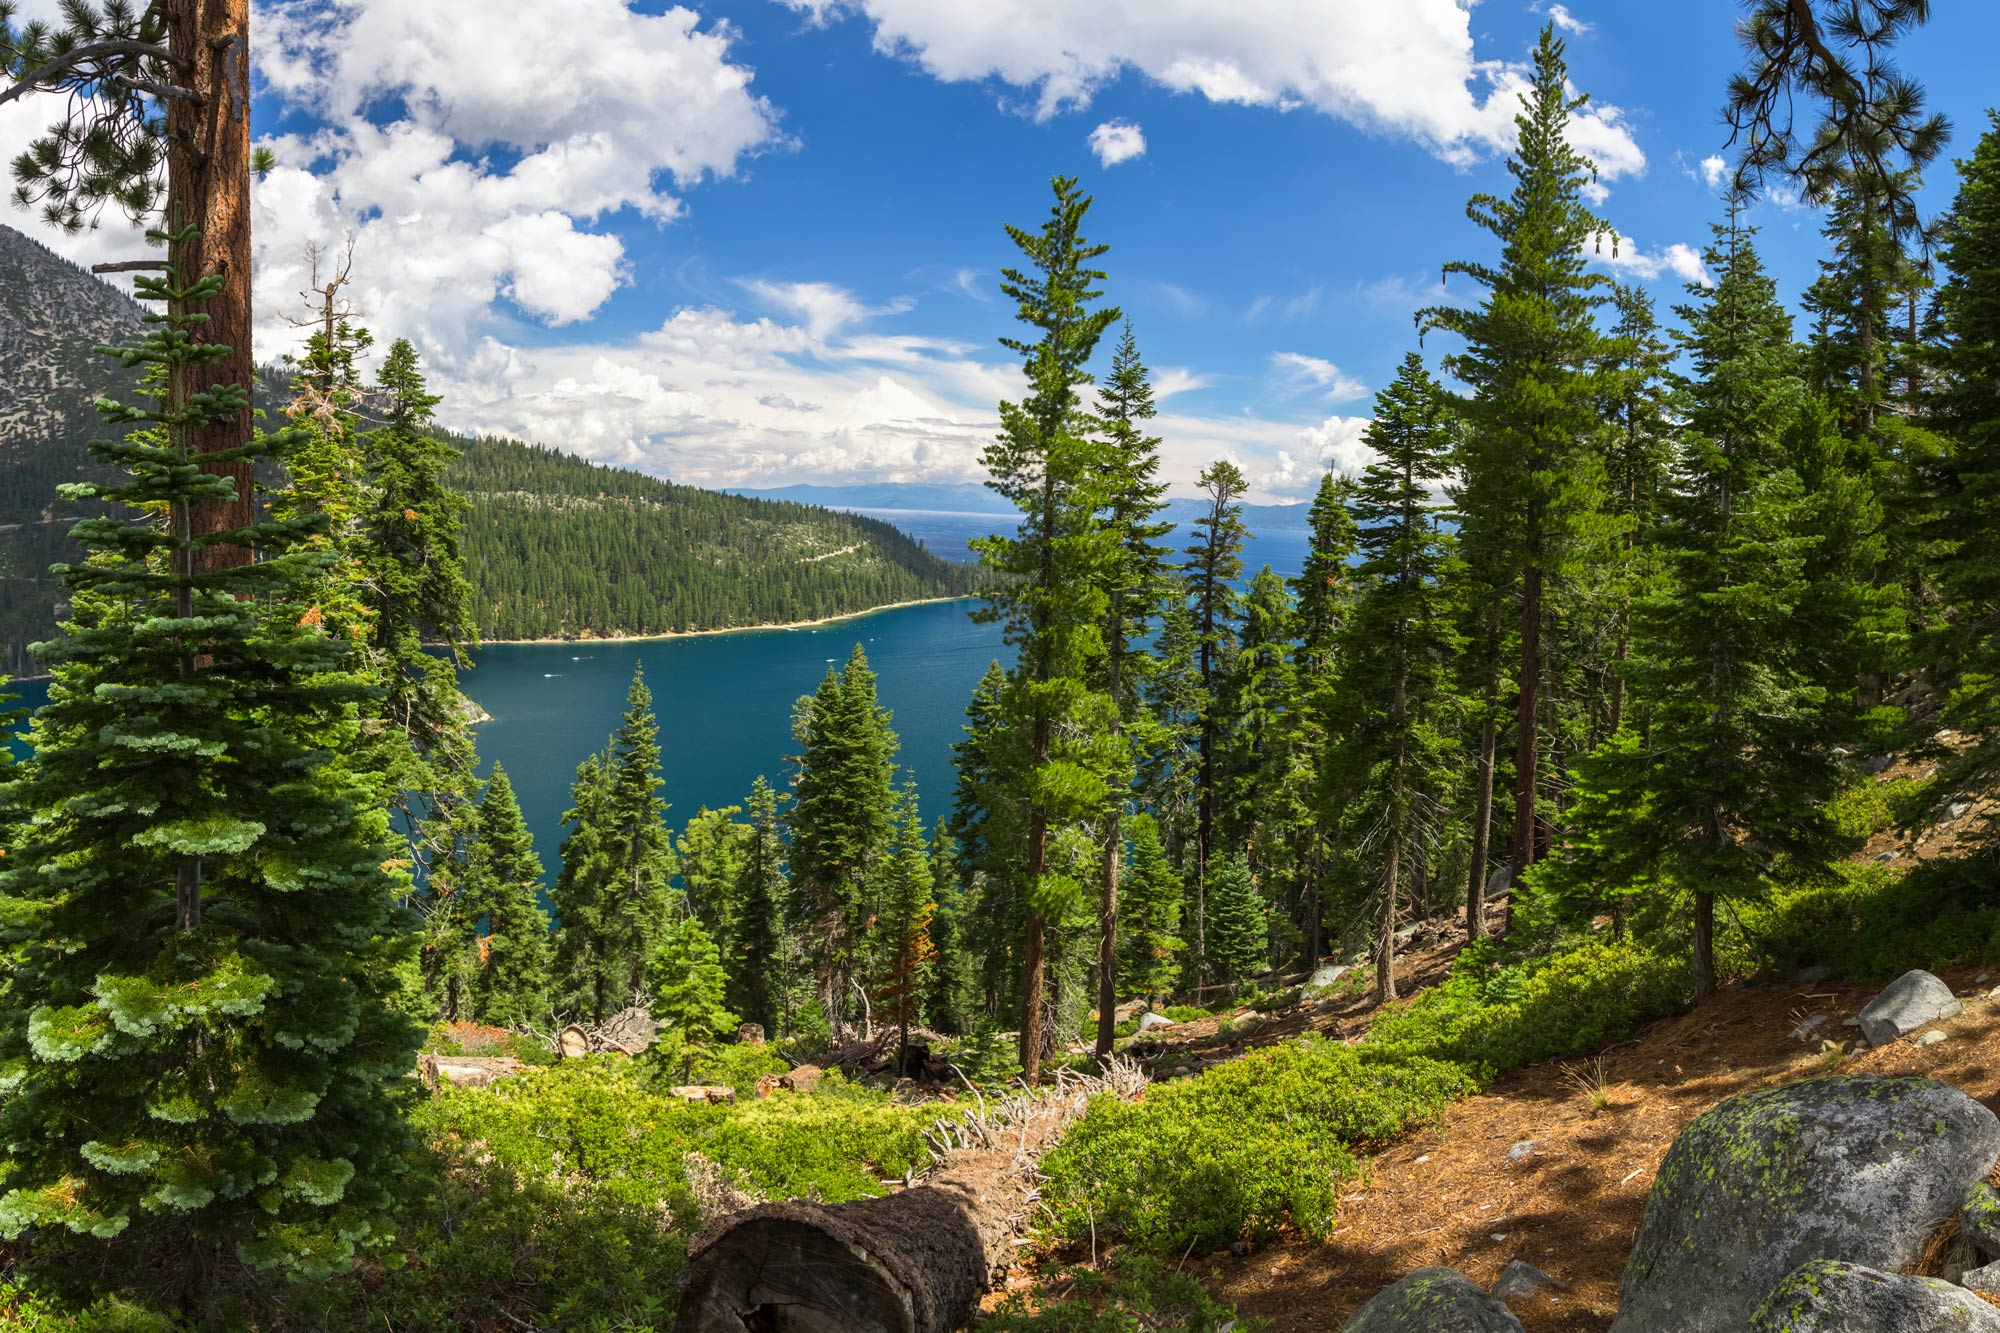 A view of Emerald Bay on Lake Tahoe